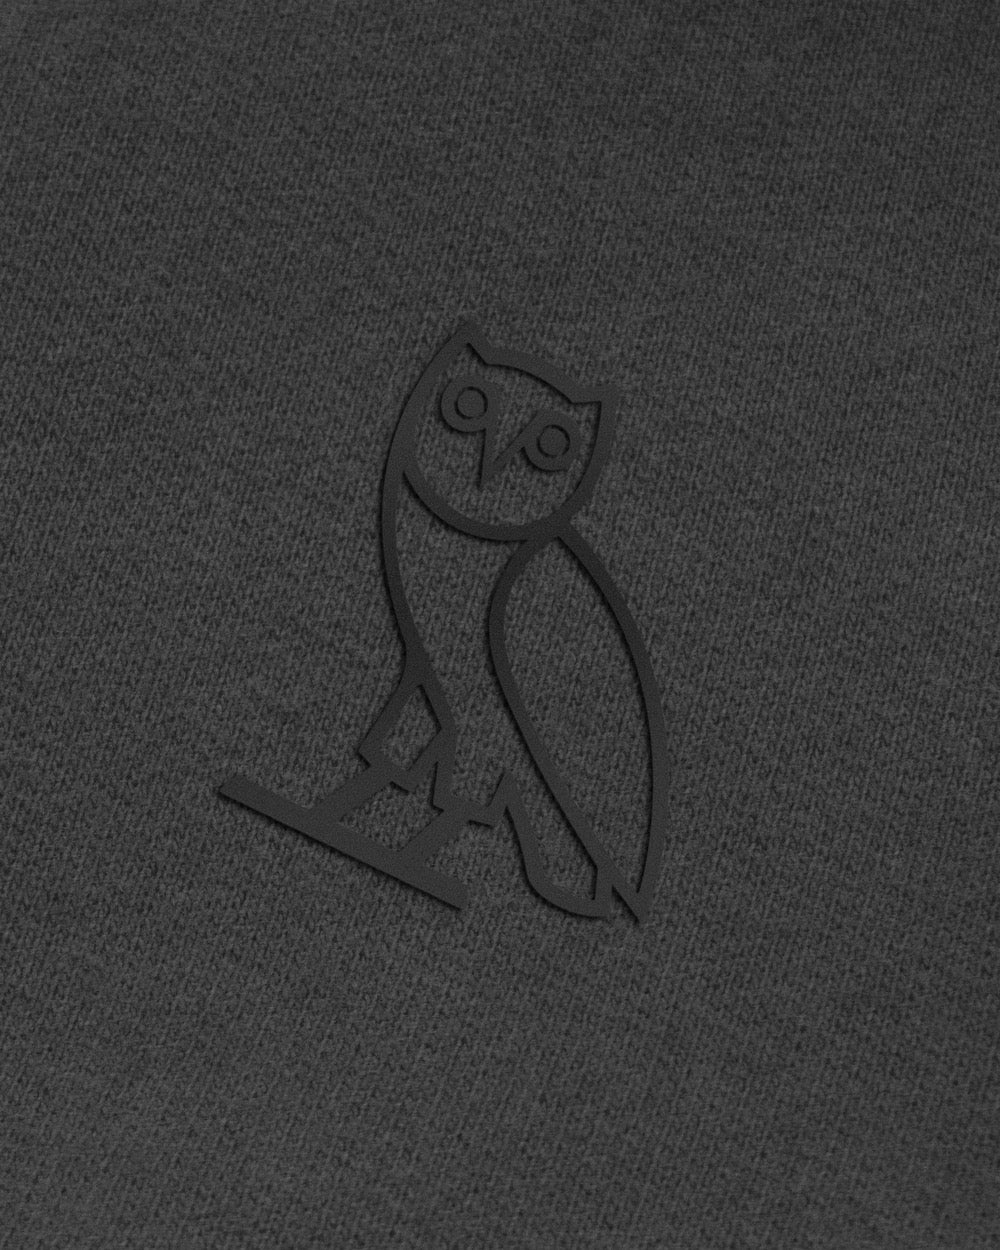 OWL LONGSLEEVE T-SHIRT - HEATHER CHARCOAL